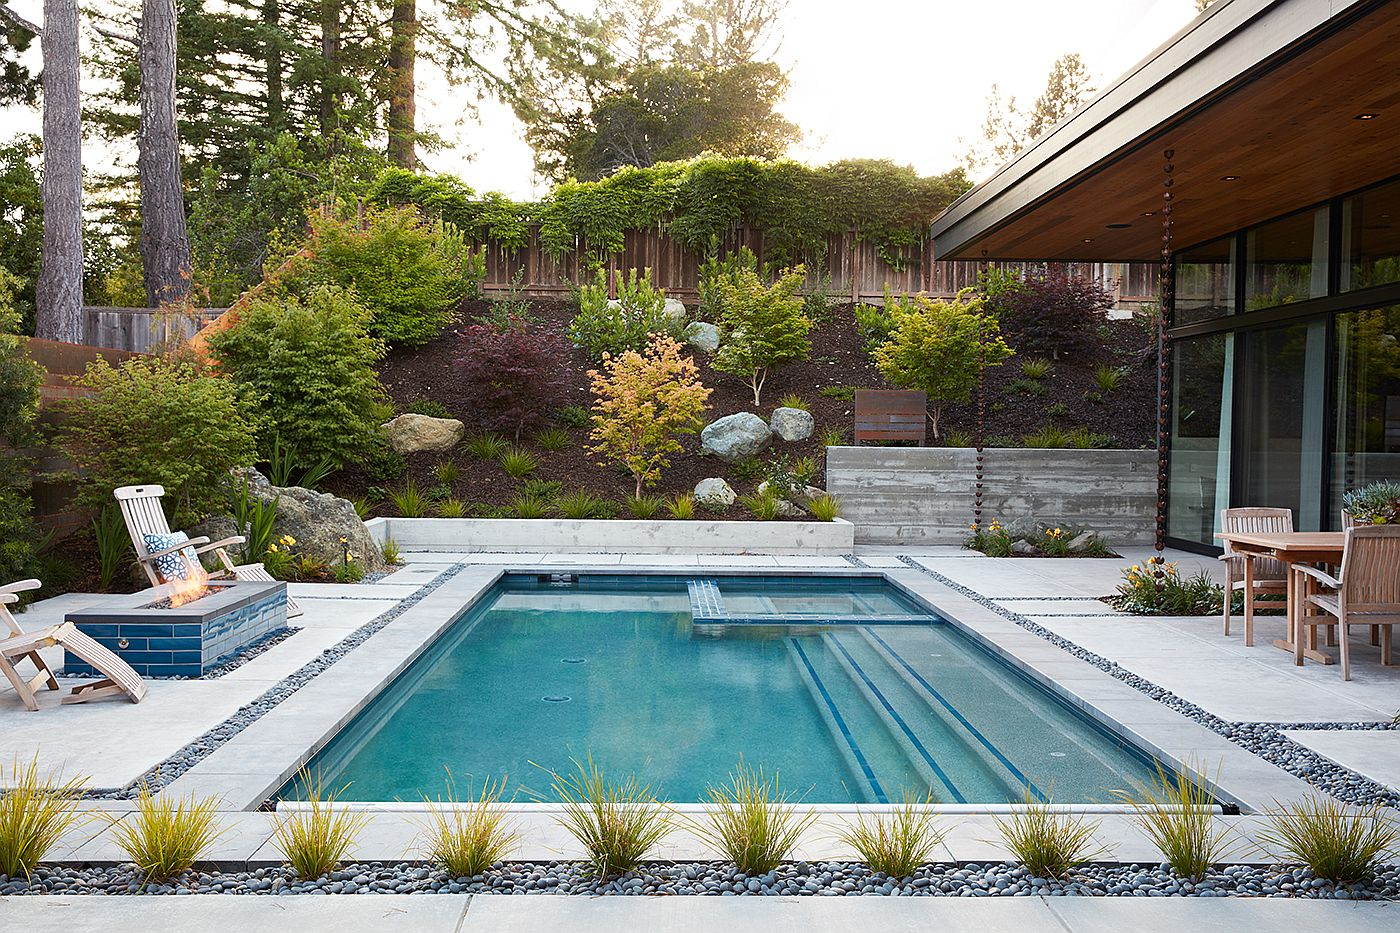 Small backyard pool idea with a smart landscape around it